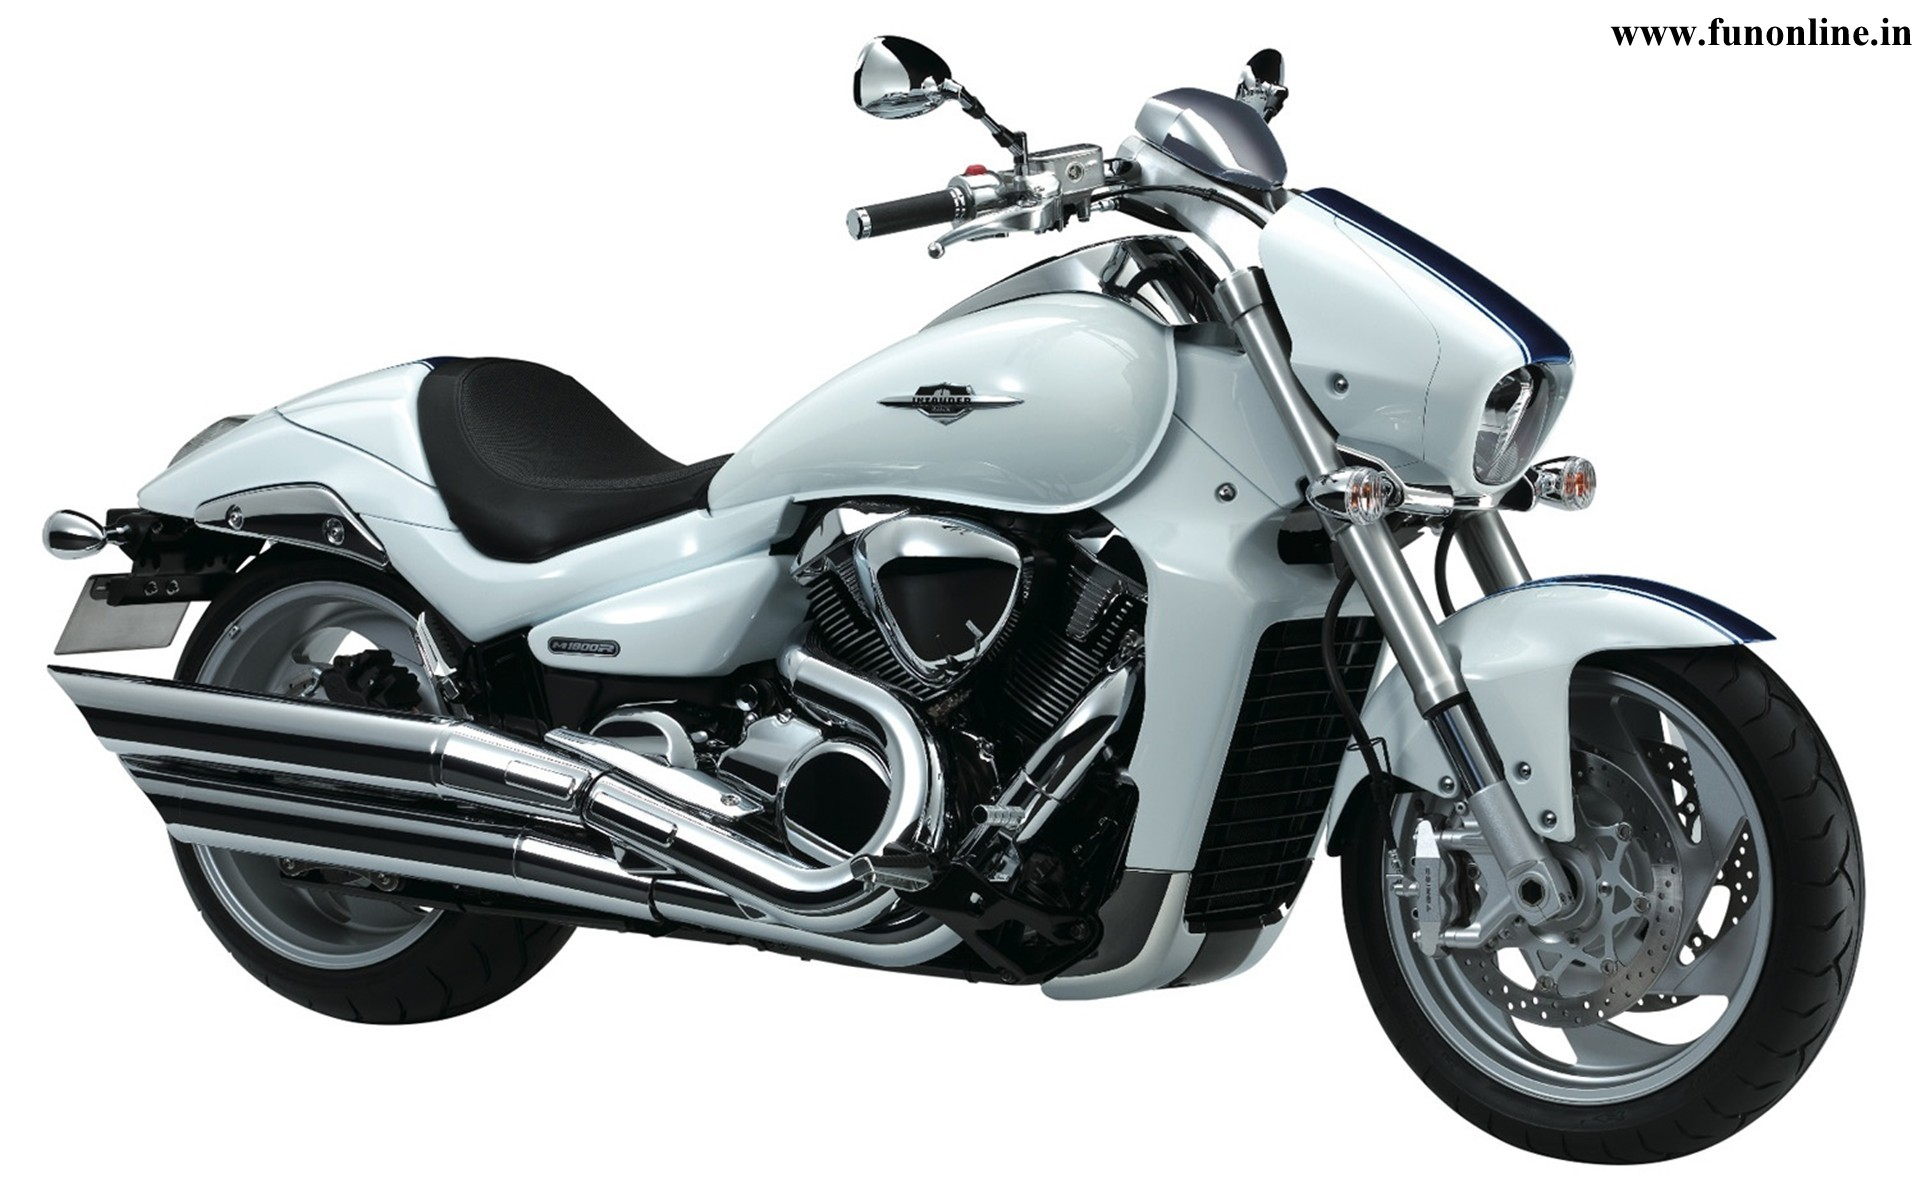 SUZUKI INTRUDER green